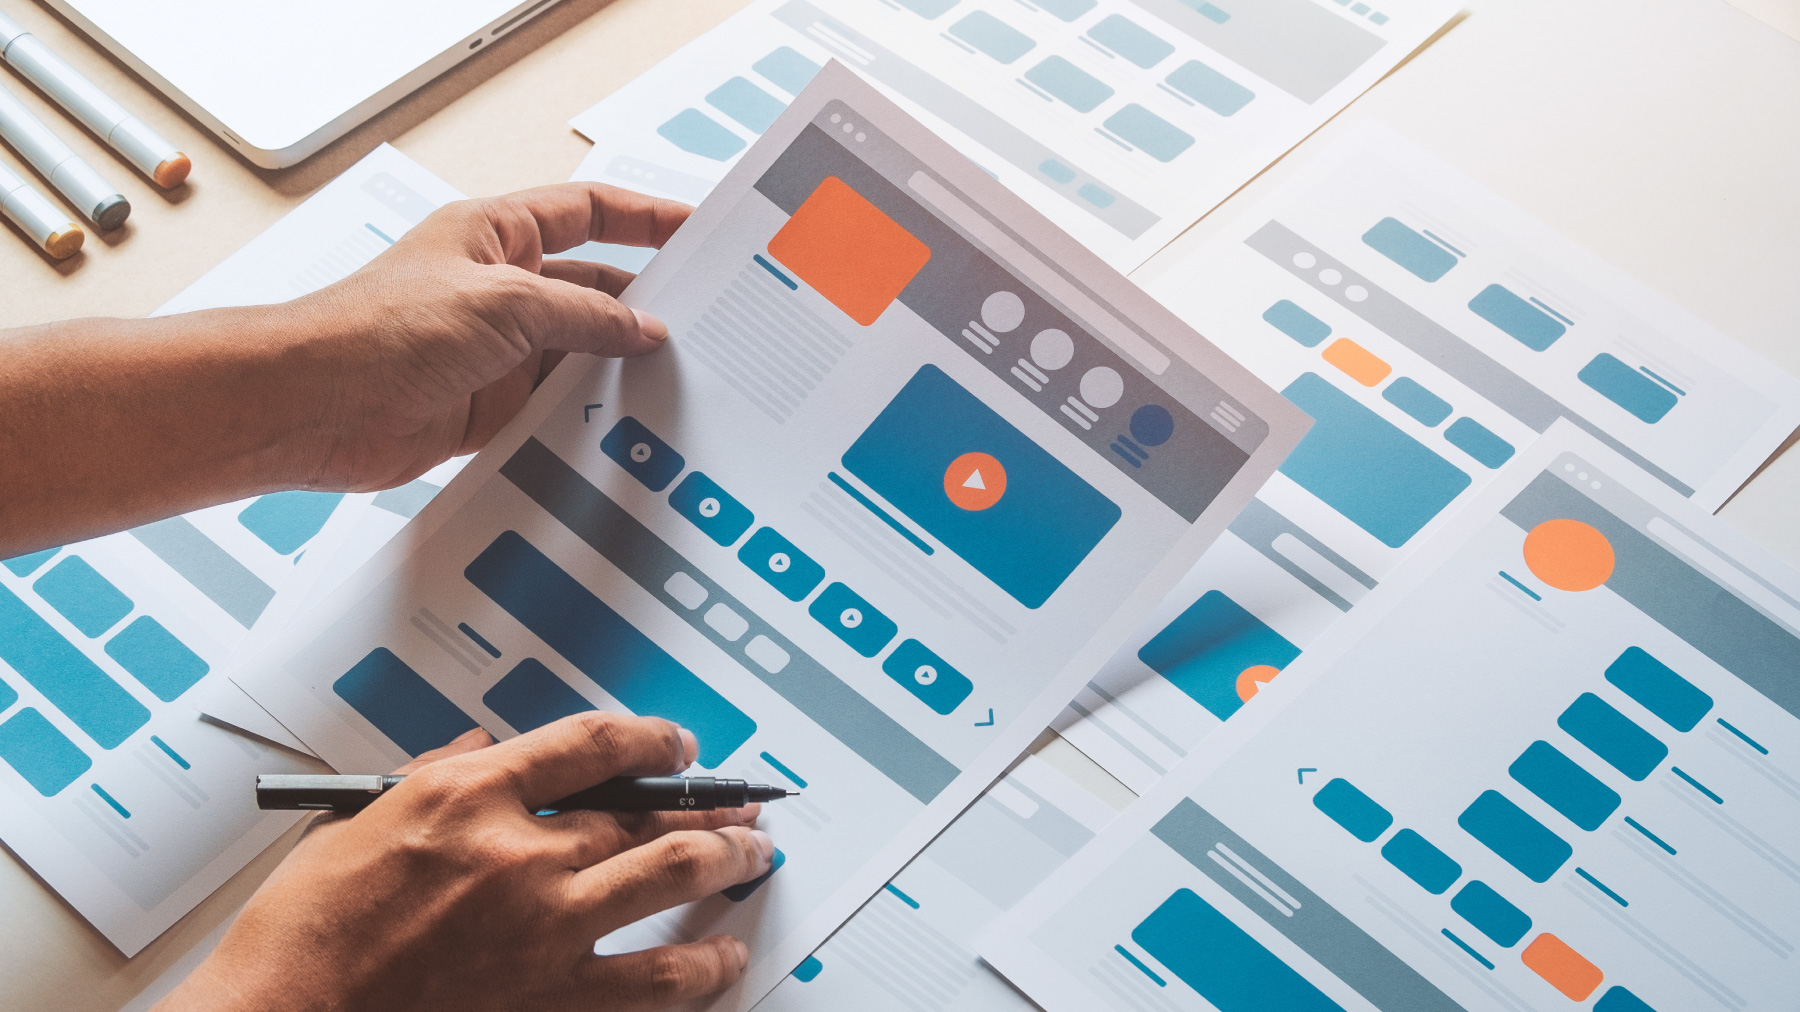 How UX research can inform branding and design